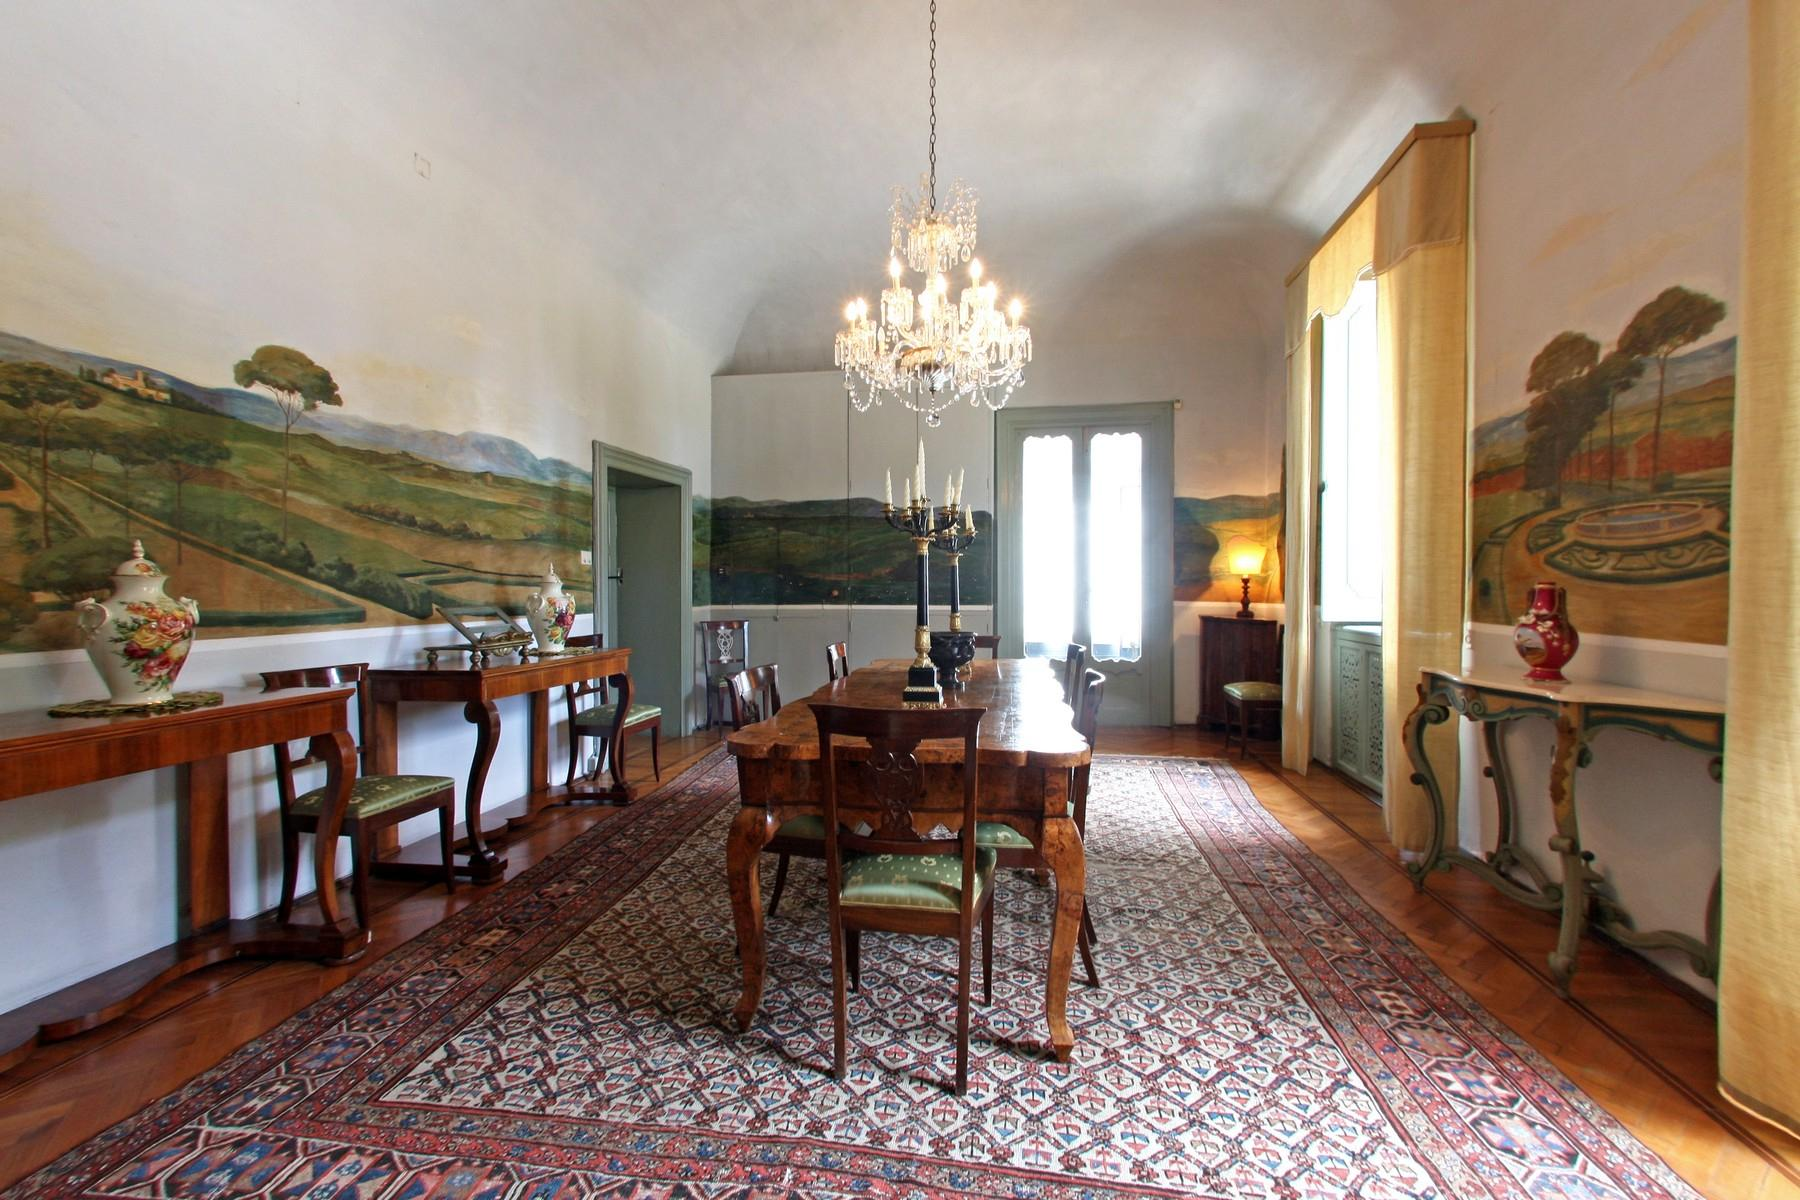 Magnificent historical villa with typical italian garden in Umbria - 32